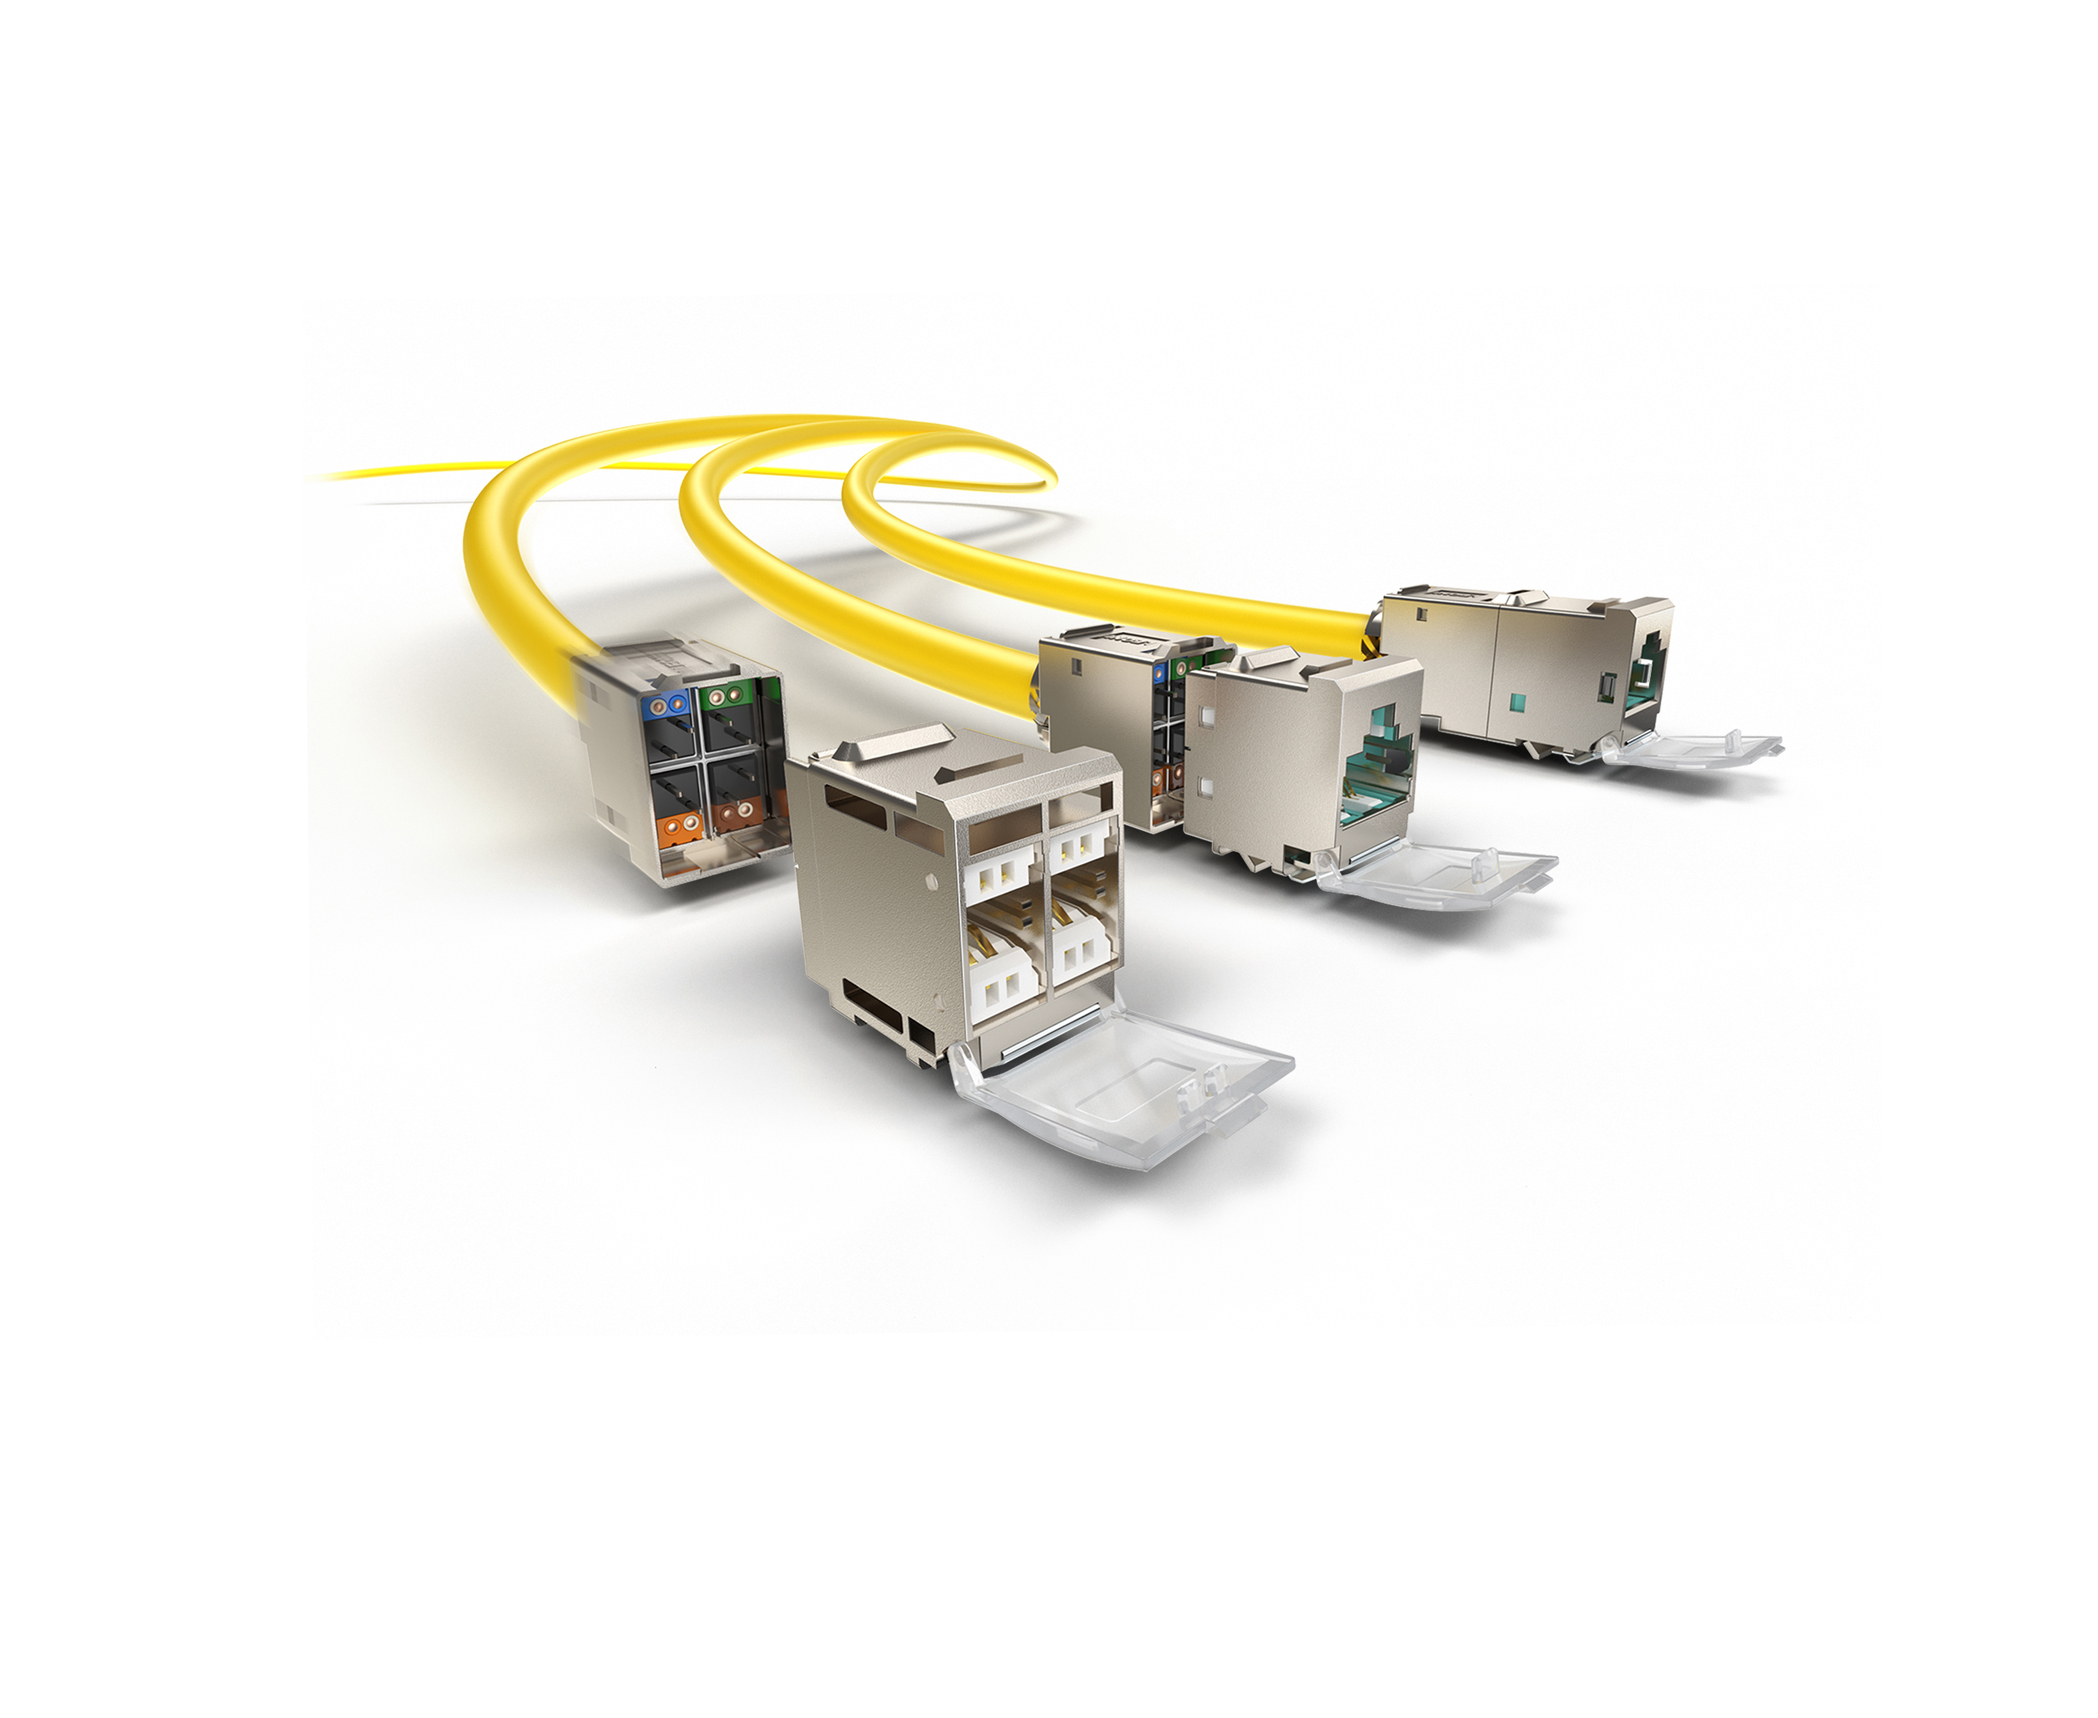 Leoni paves the way for faster, 100 Gigabit-per-second data transmission